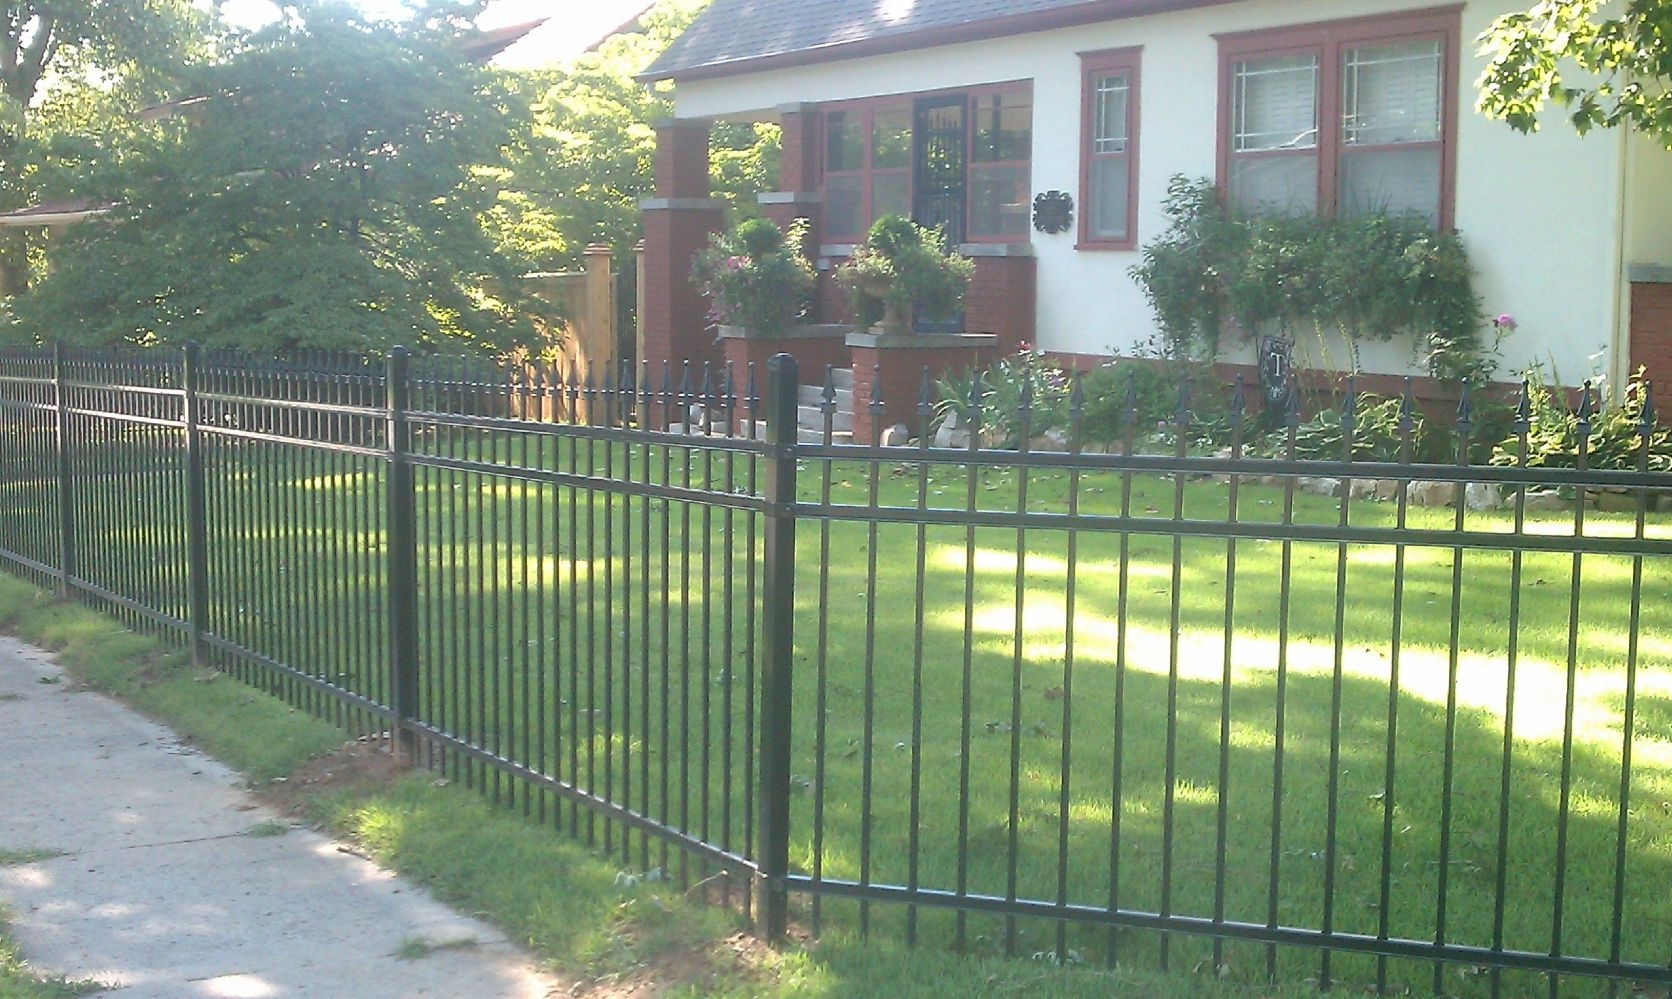 Professional fencing by our fence company in West Plains, MO